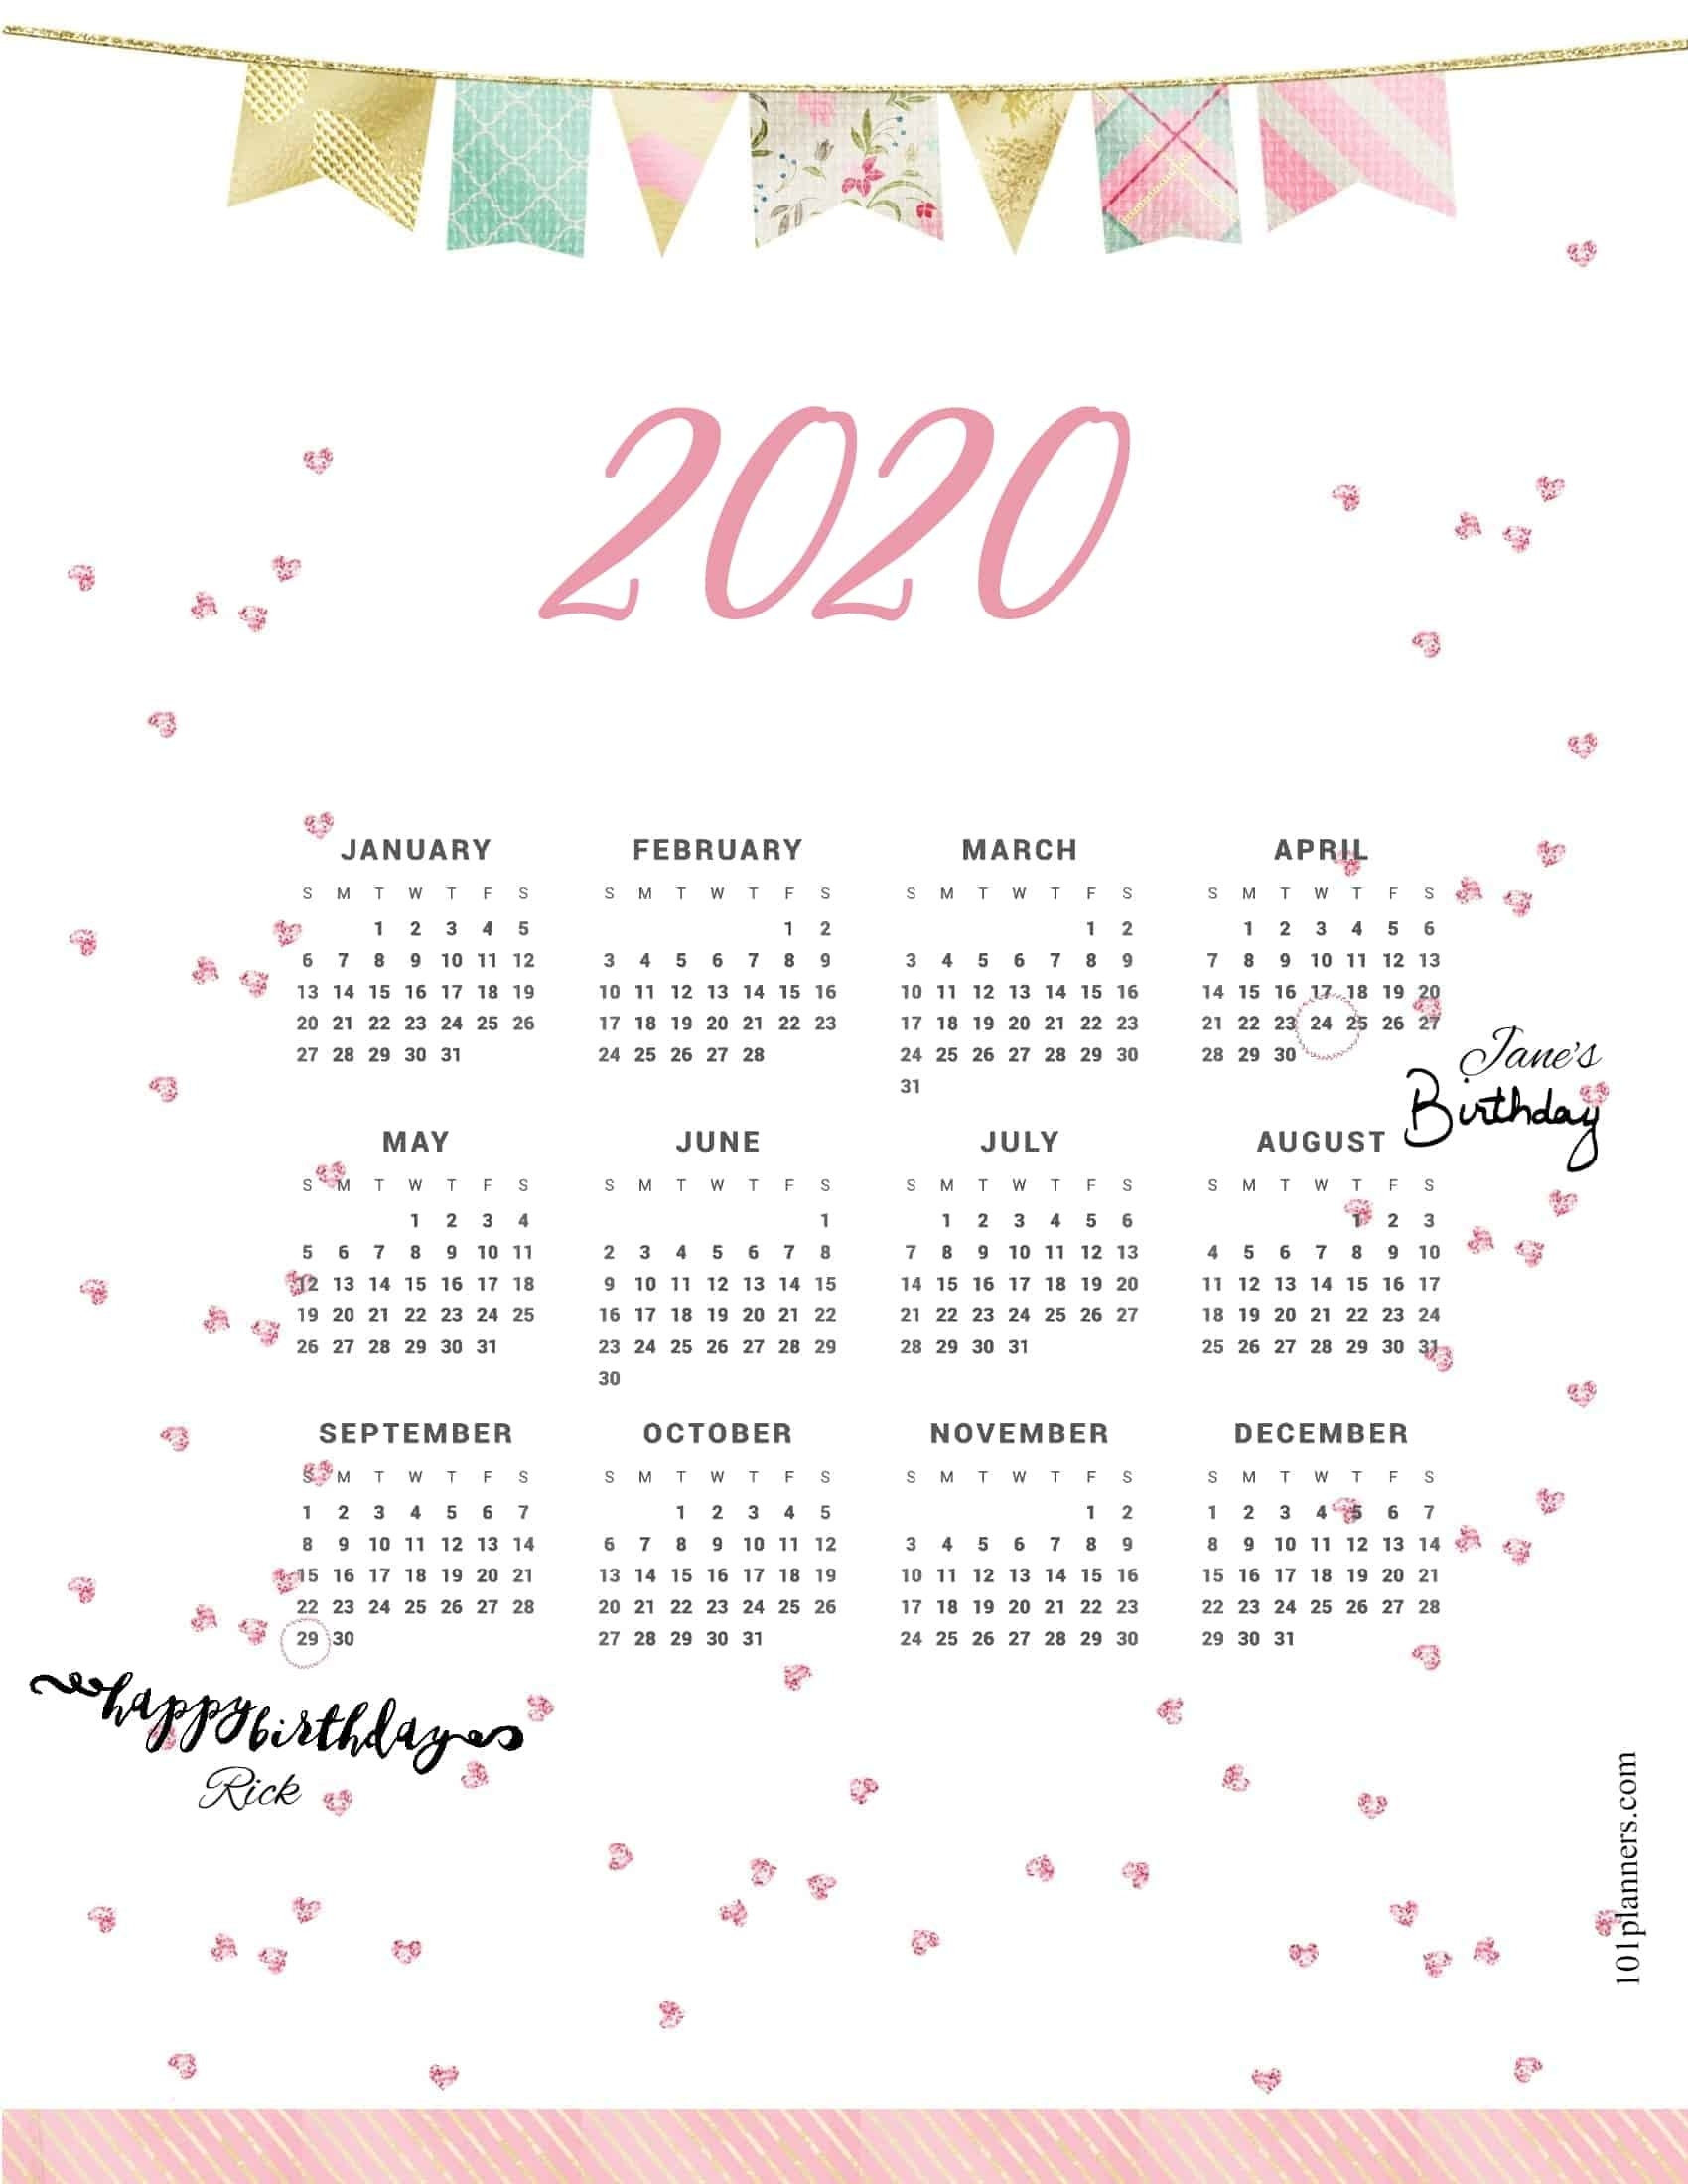 Free Printable 2020 Yearly Calendar At A Glance | 101 Countdown To Christmas Calendar Printable 2020